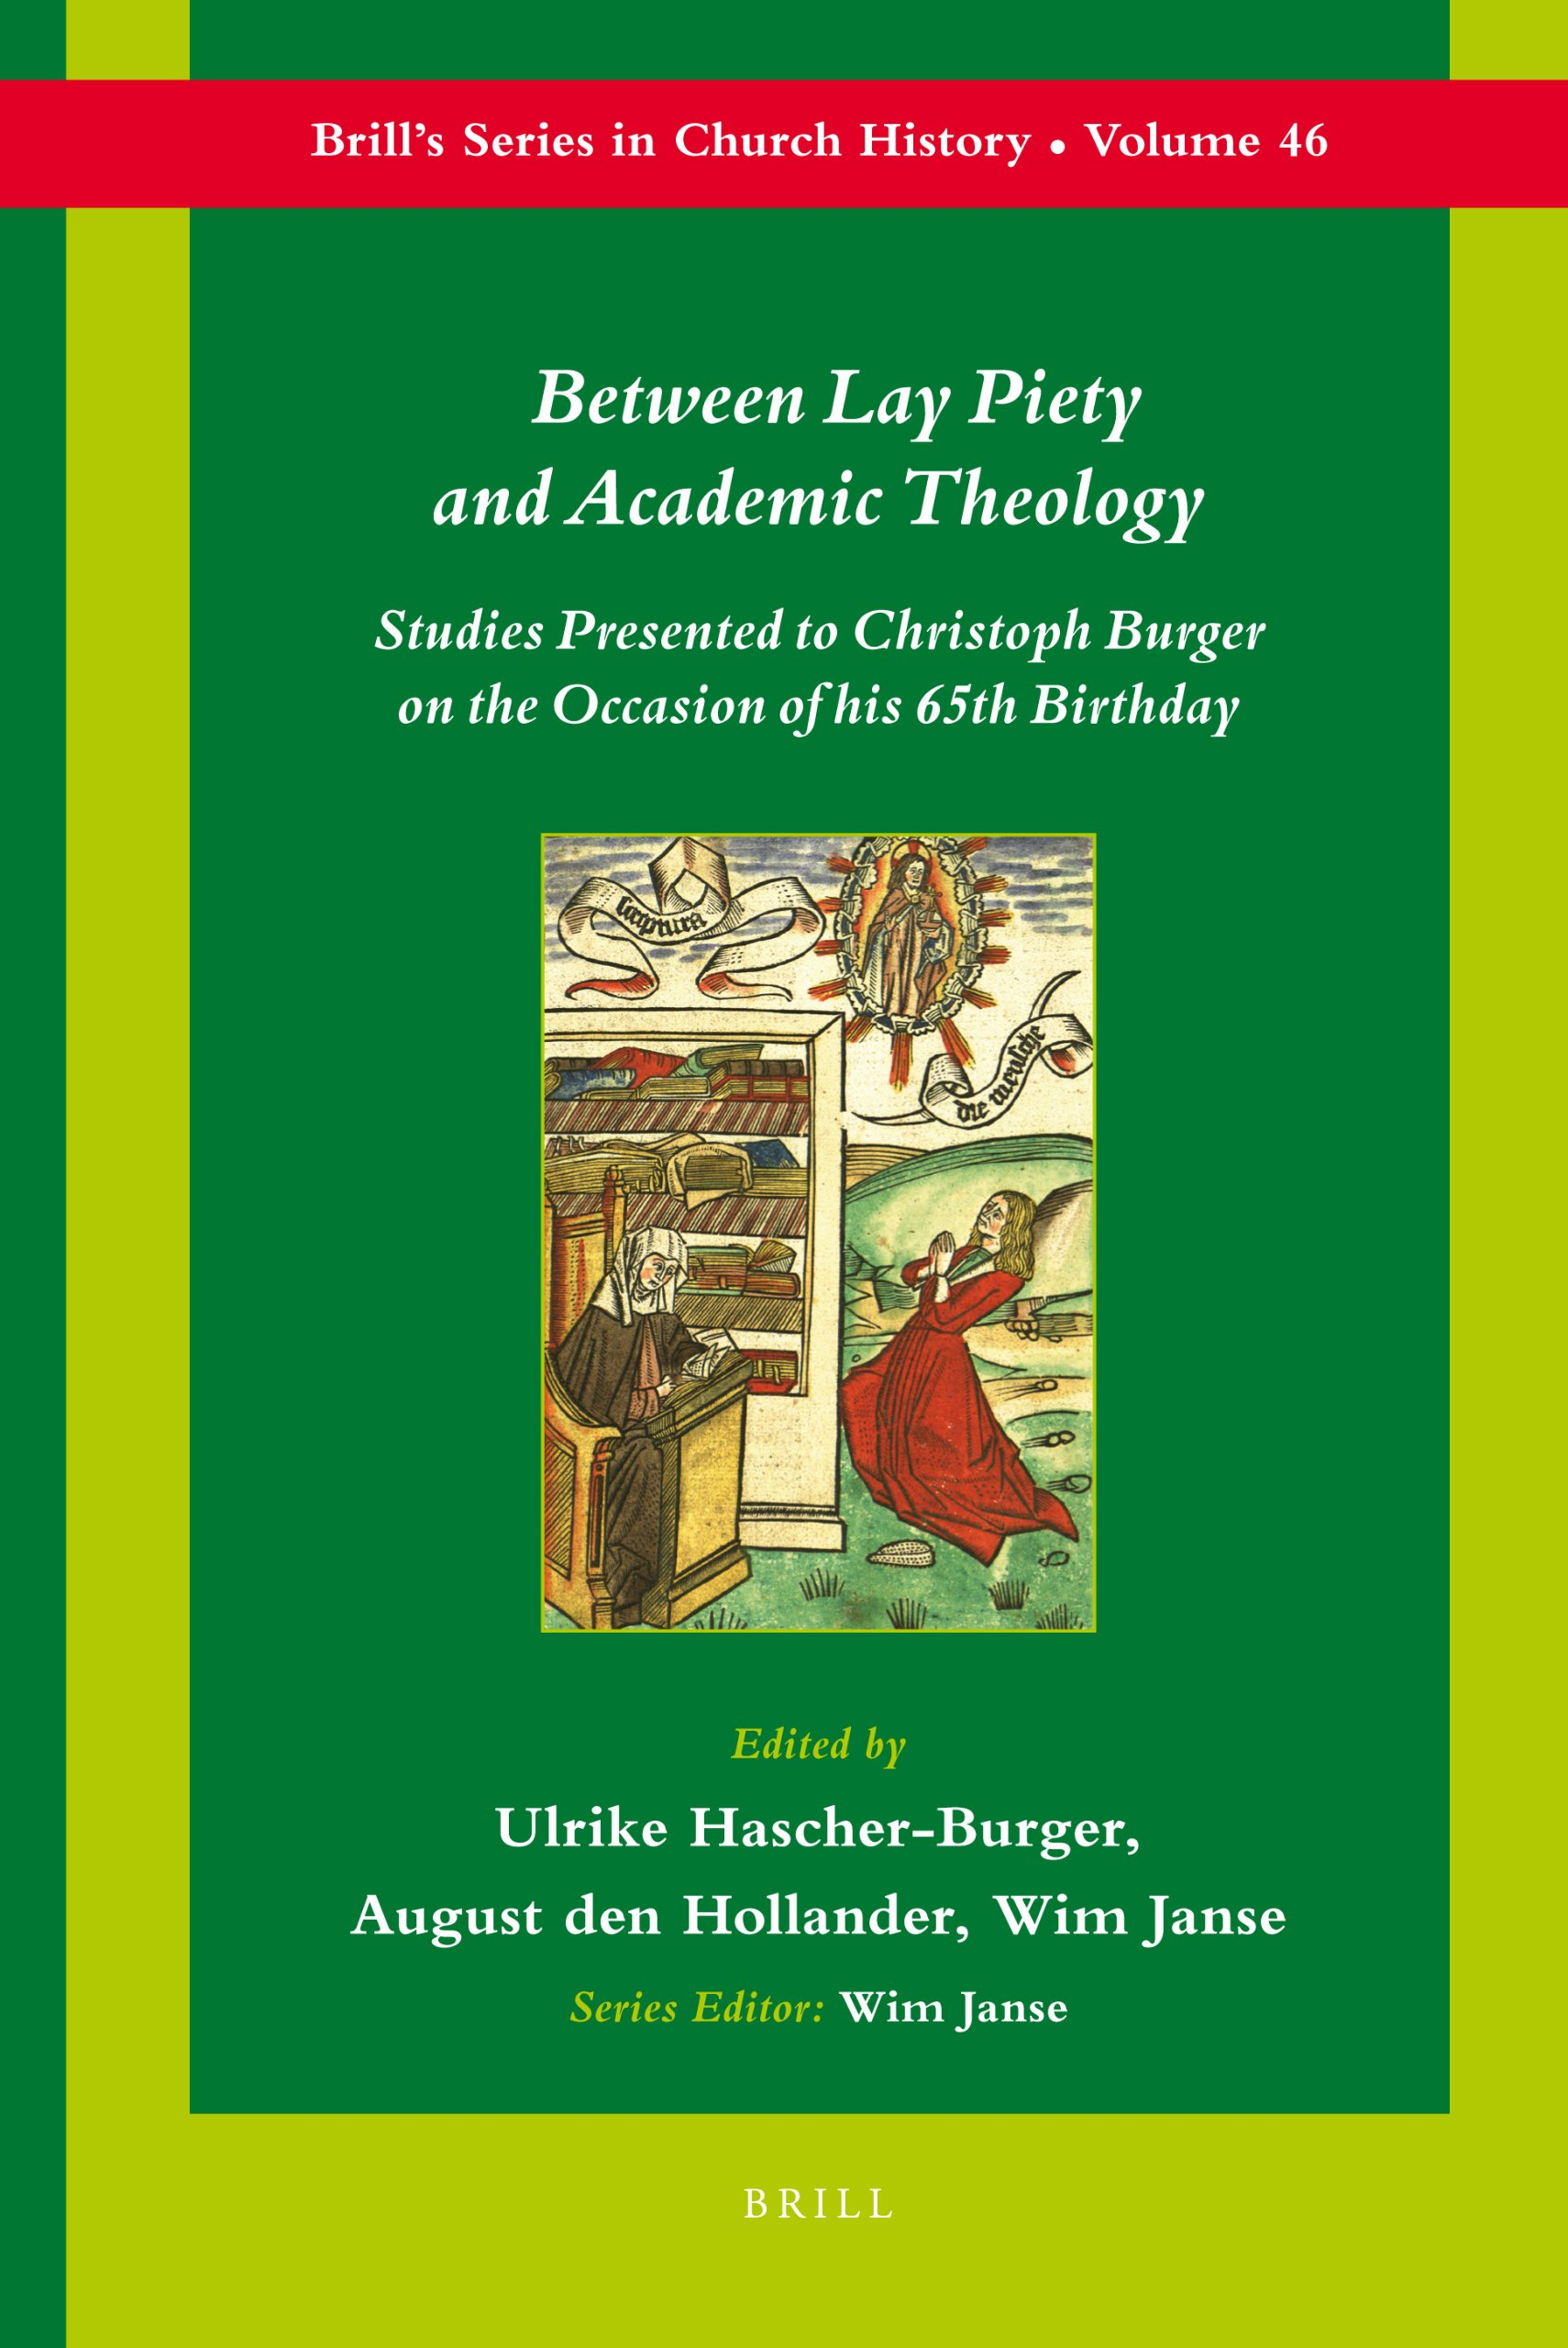 Download Between Lay Piety and Academic Theology: Studies Presented to Christoph Burger on the Occasion of His 65th Birthday (Brill's Series in Church History) PDF